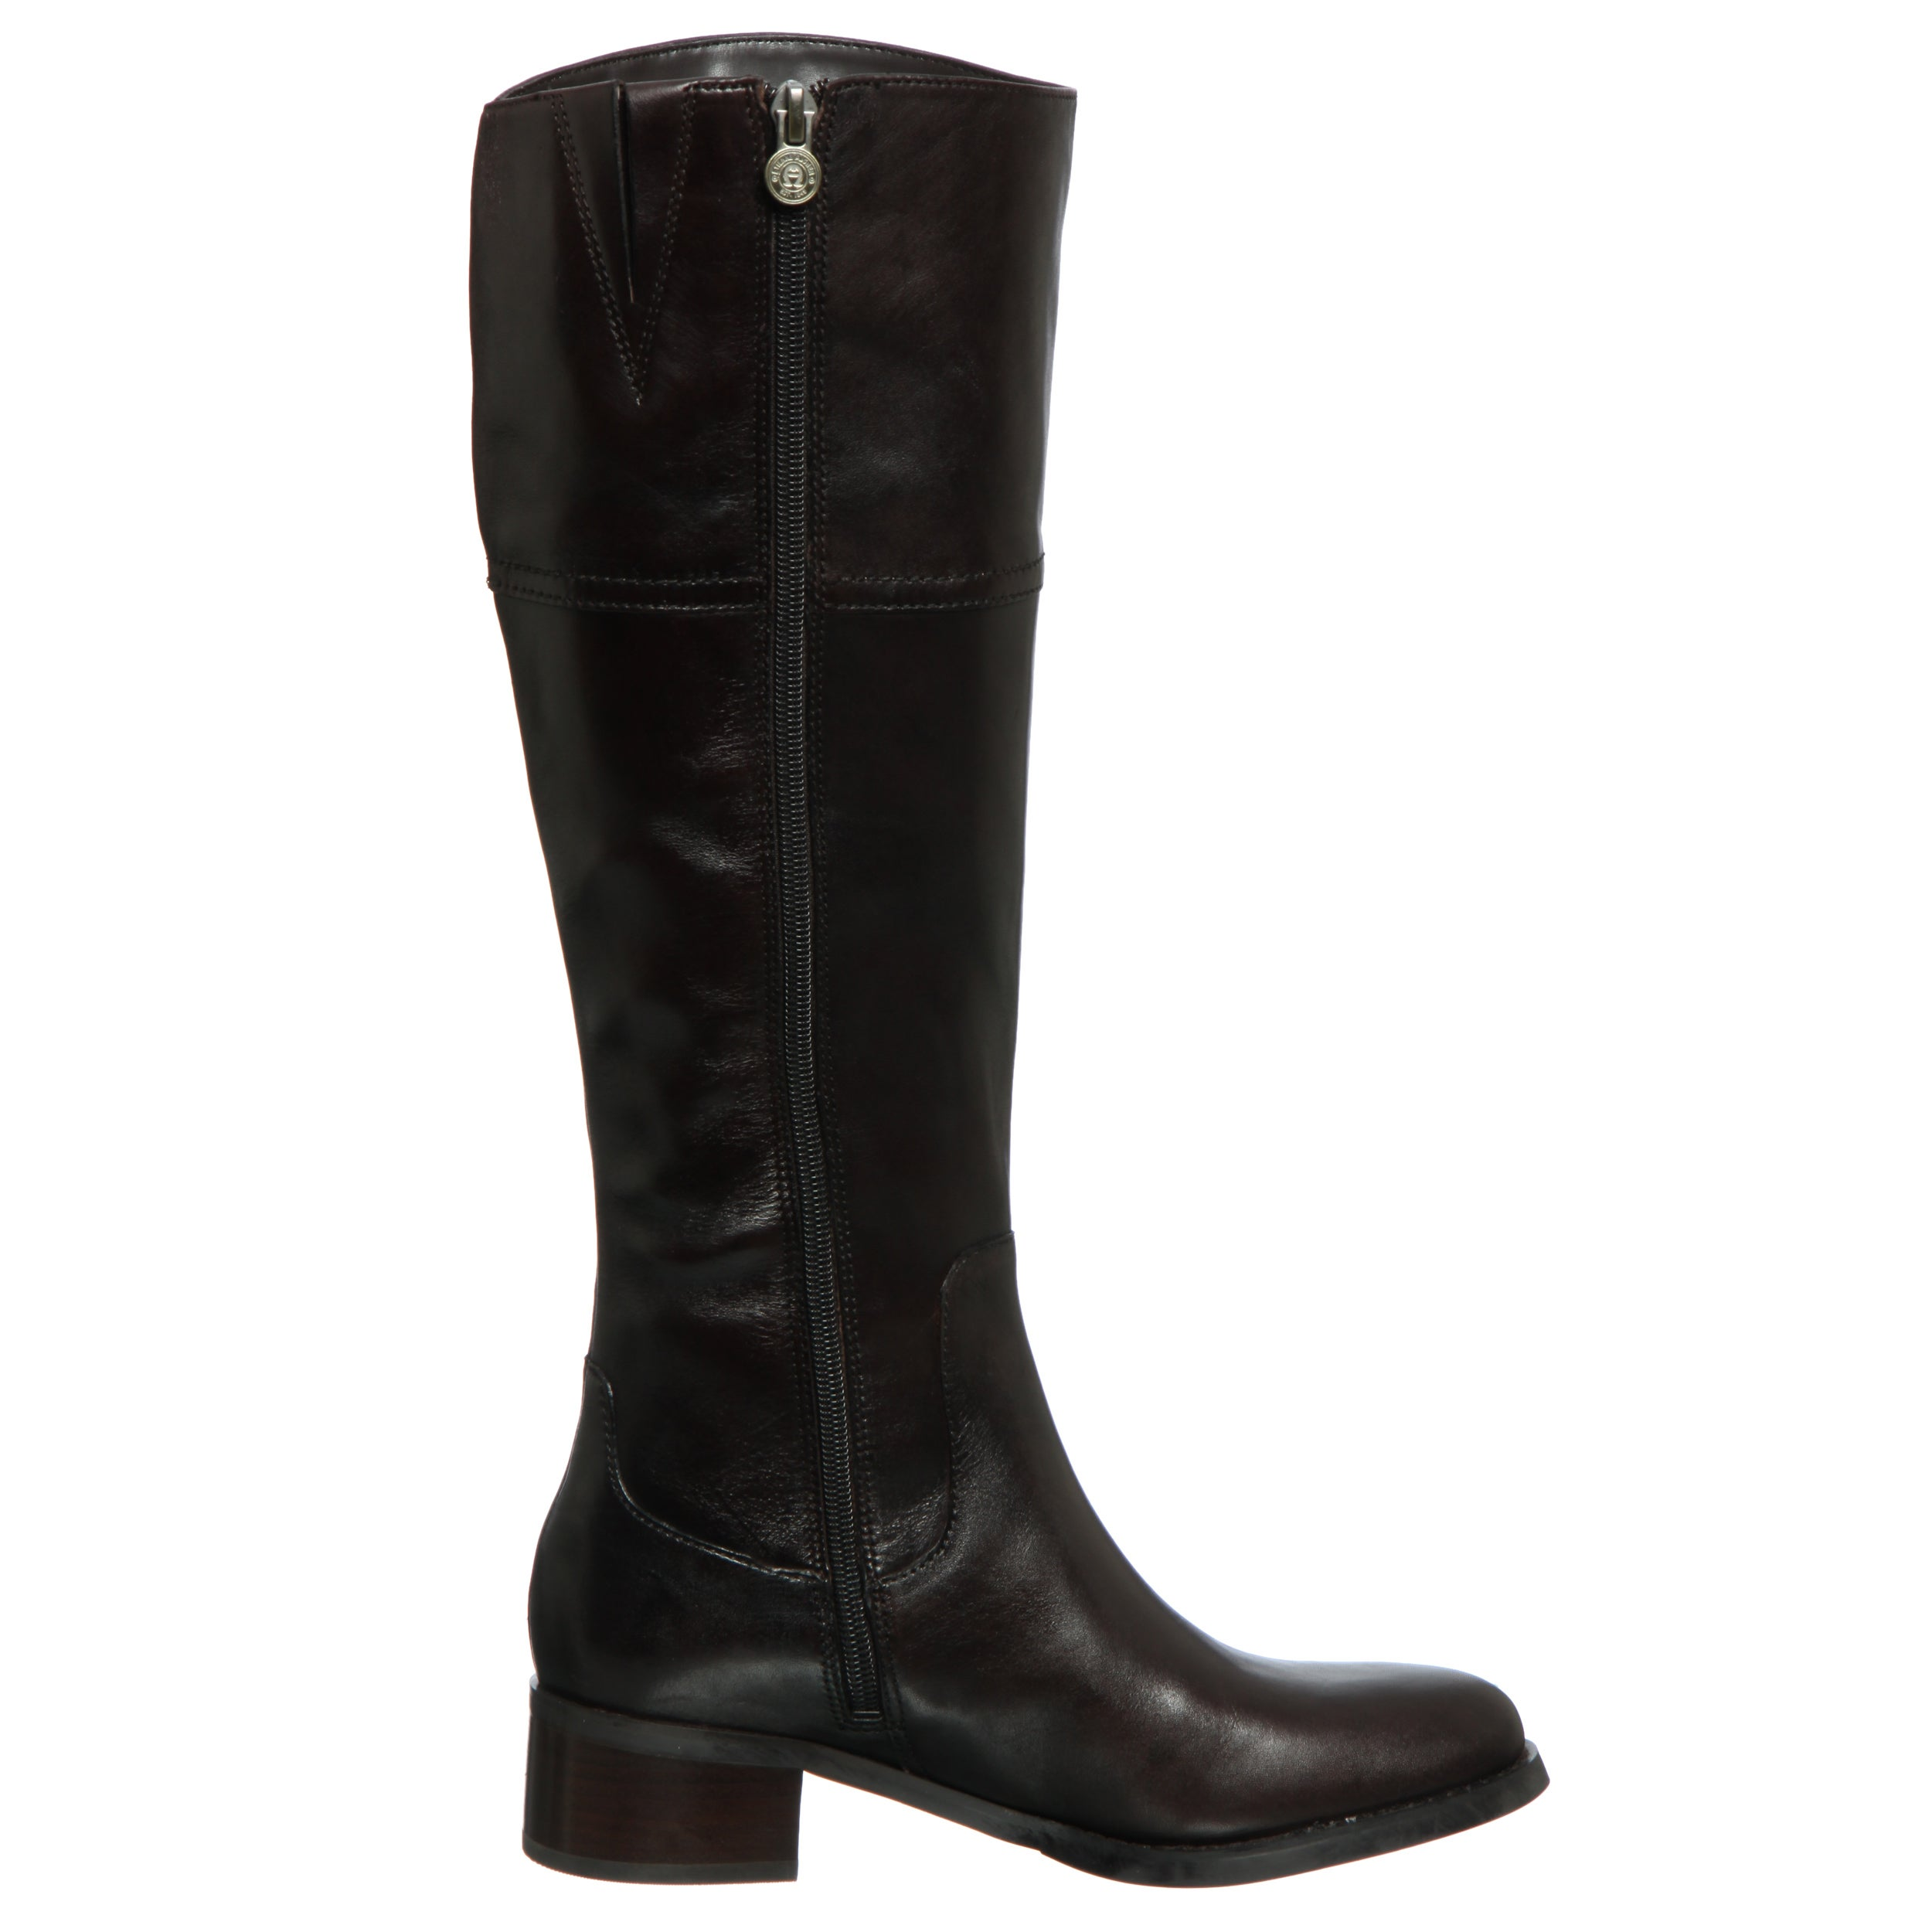 67733a0541f Etienne Aigner Women's 'Chastity' Riding Boots